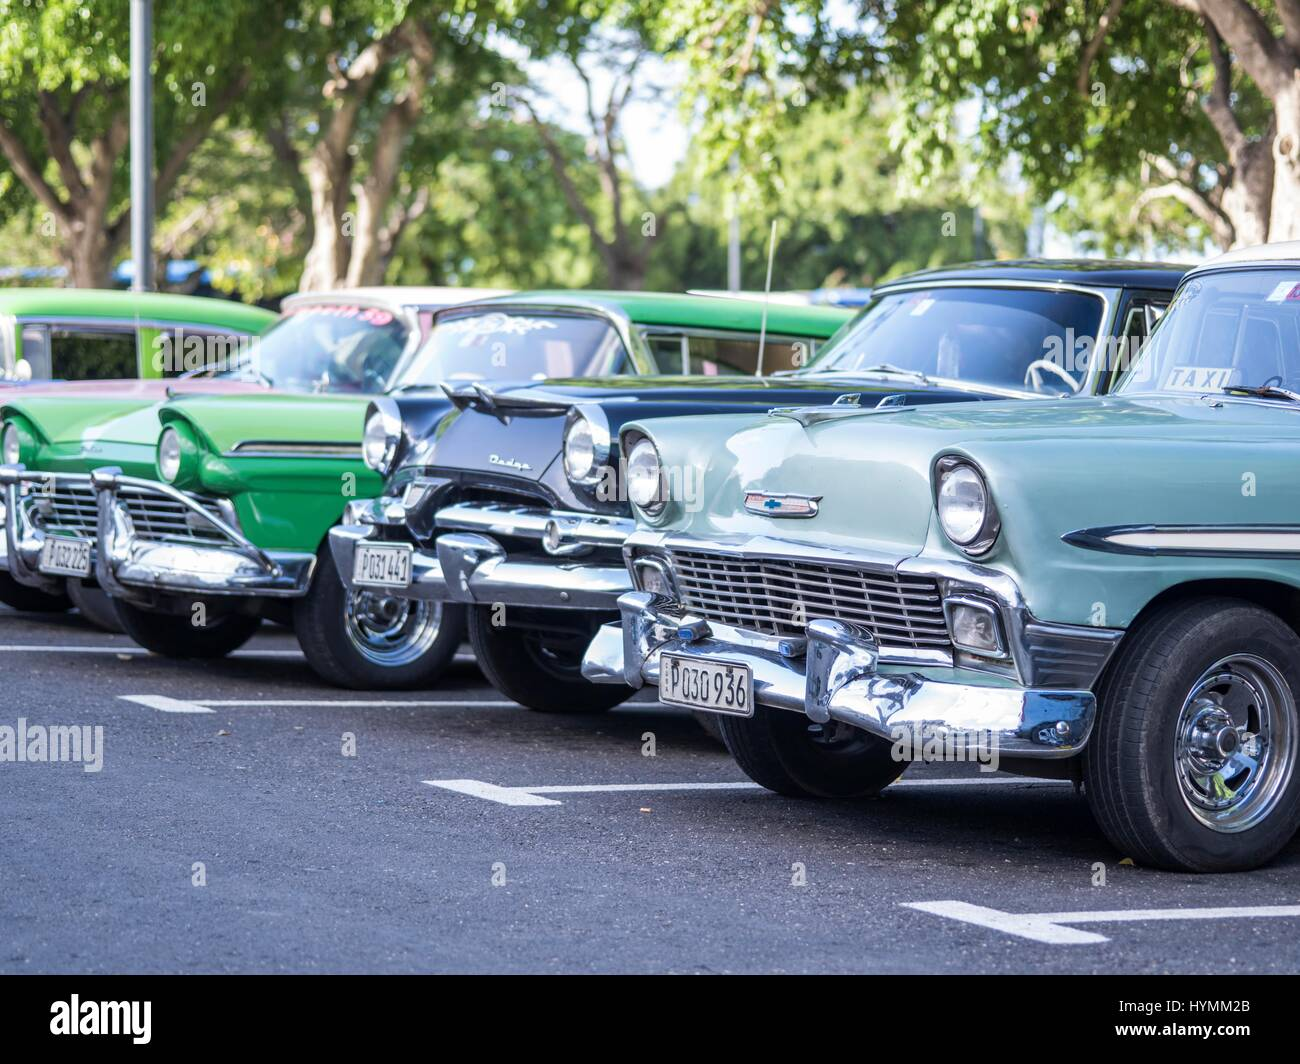 Street scene of Old Havana with 1950s classic American cars ...